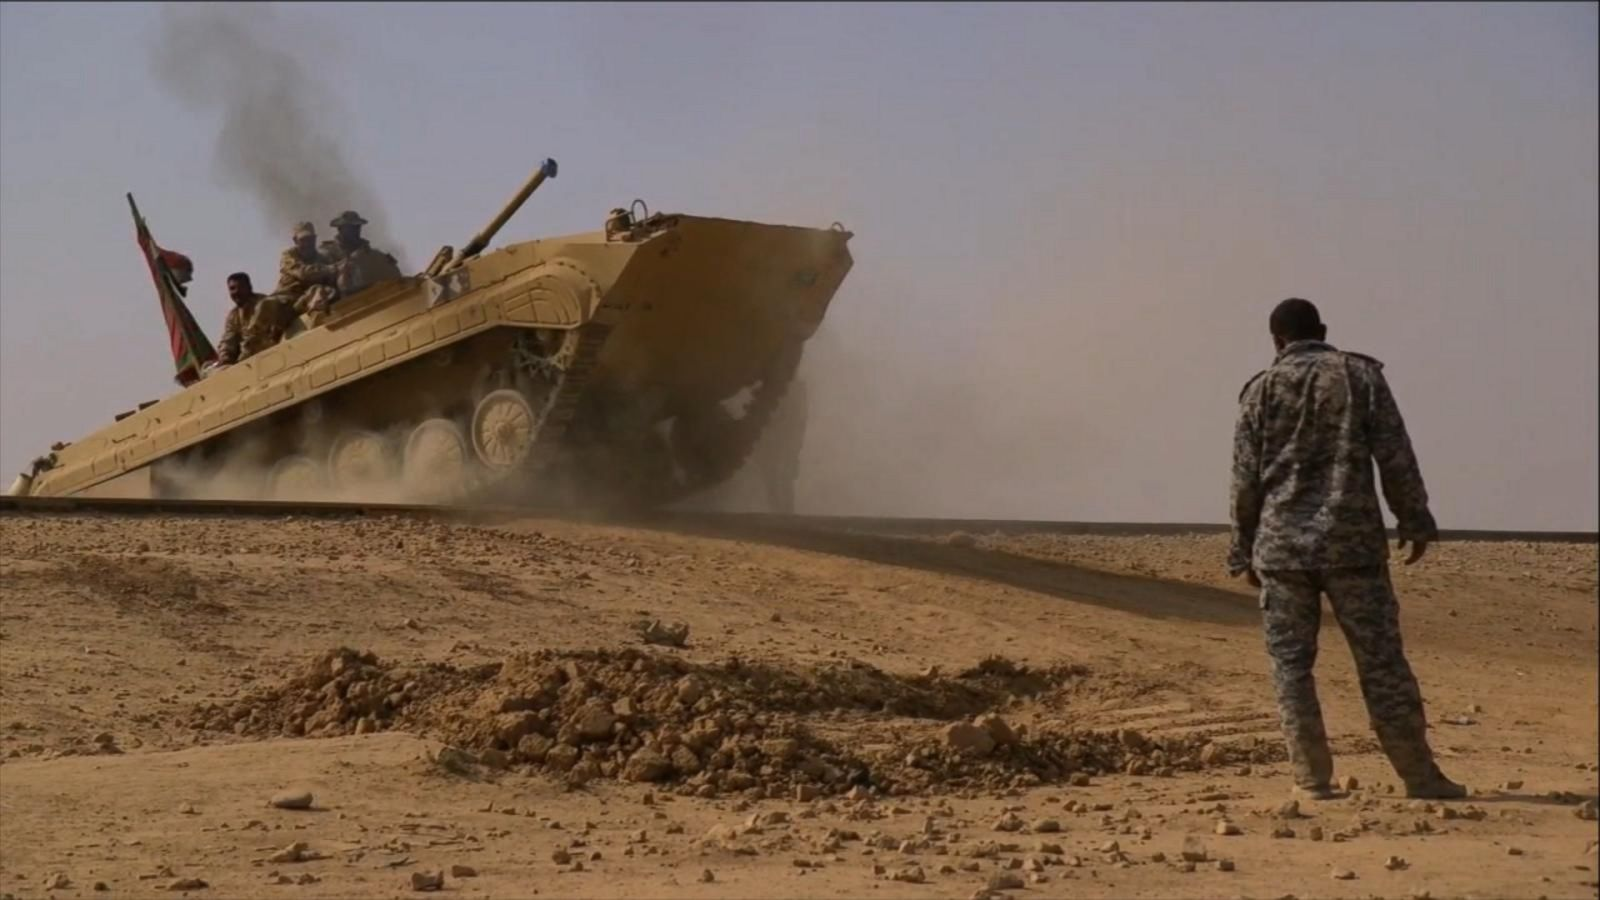 VIDEO: The Road to Mosul: Embedded with the Iraqi Army